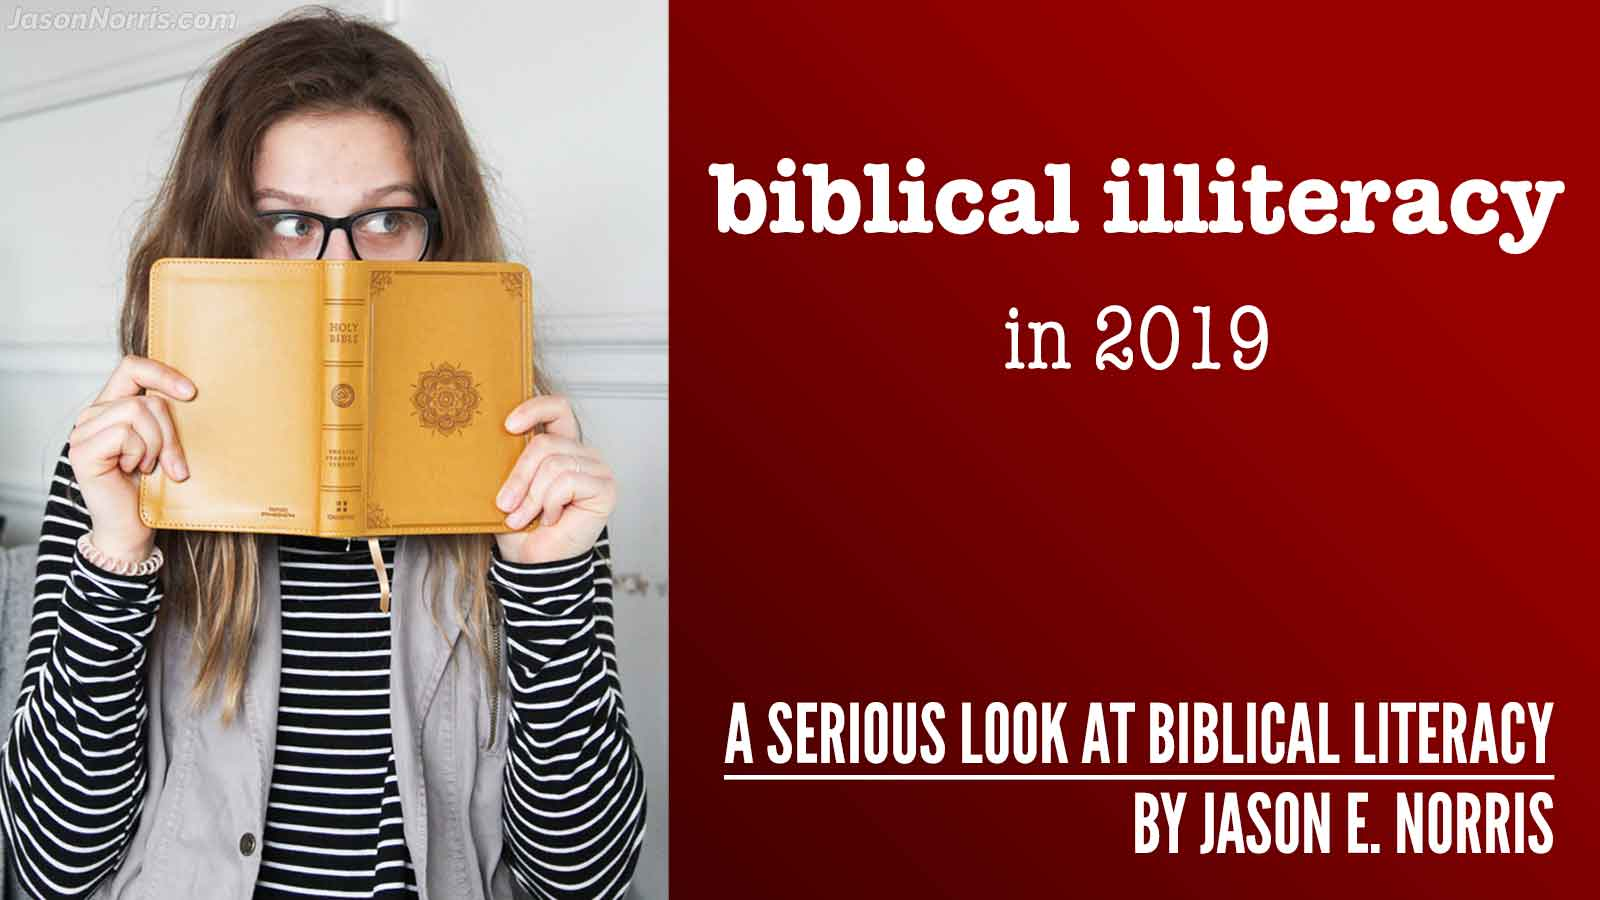 Biblical illiteracy in 2019 by Jason E. Norris